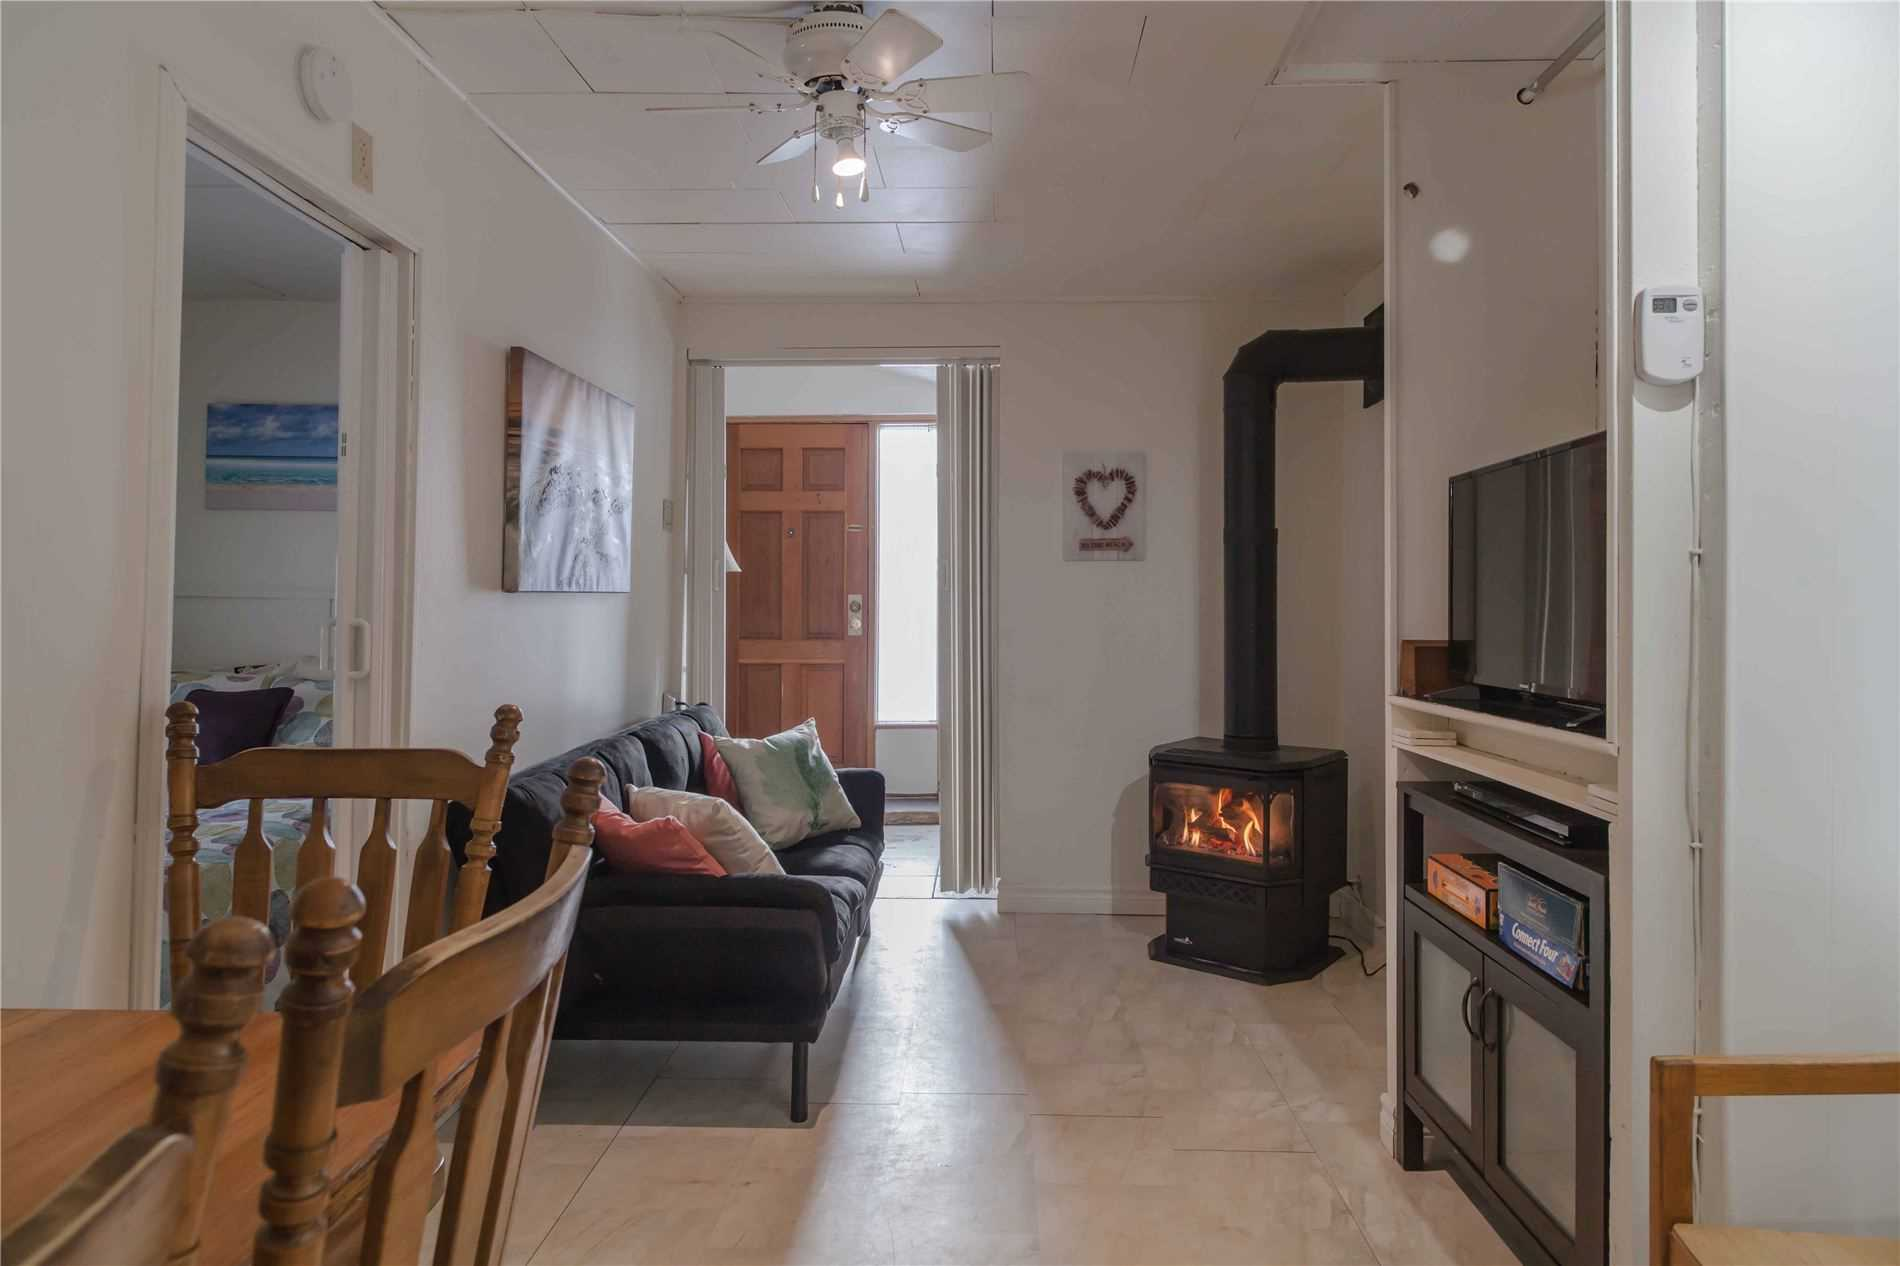 205 First St N, South Bruce Peninsula X4663644